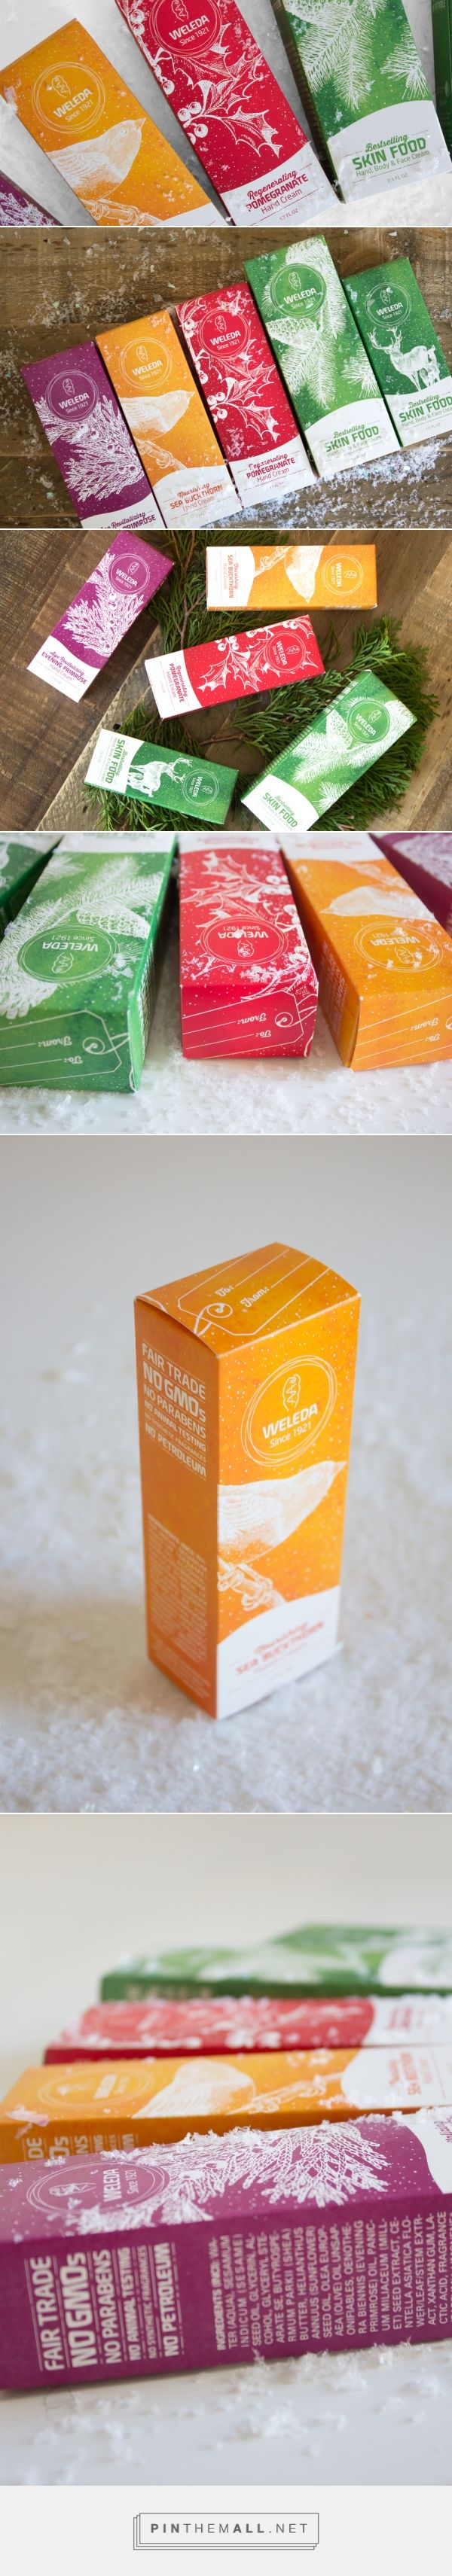 Weleda North America Holiday Packaging /  BRIGADE